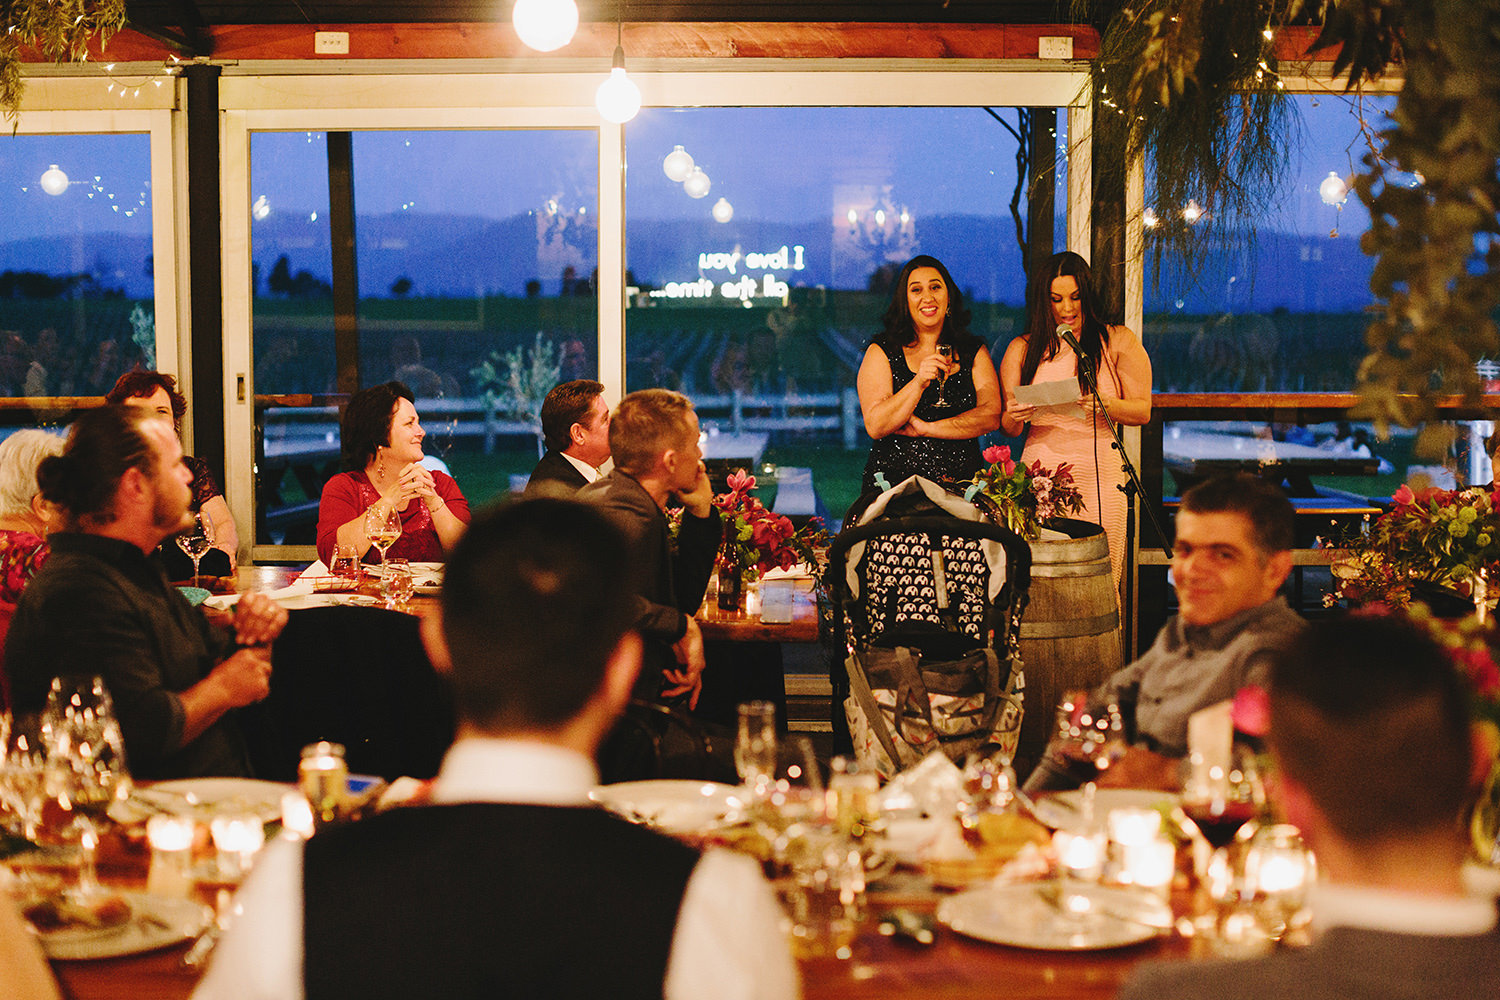 Melbourne_Winery_Wedding_Chris_Merrily143.JPG